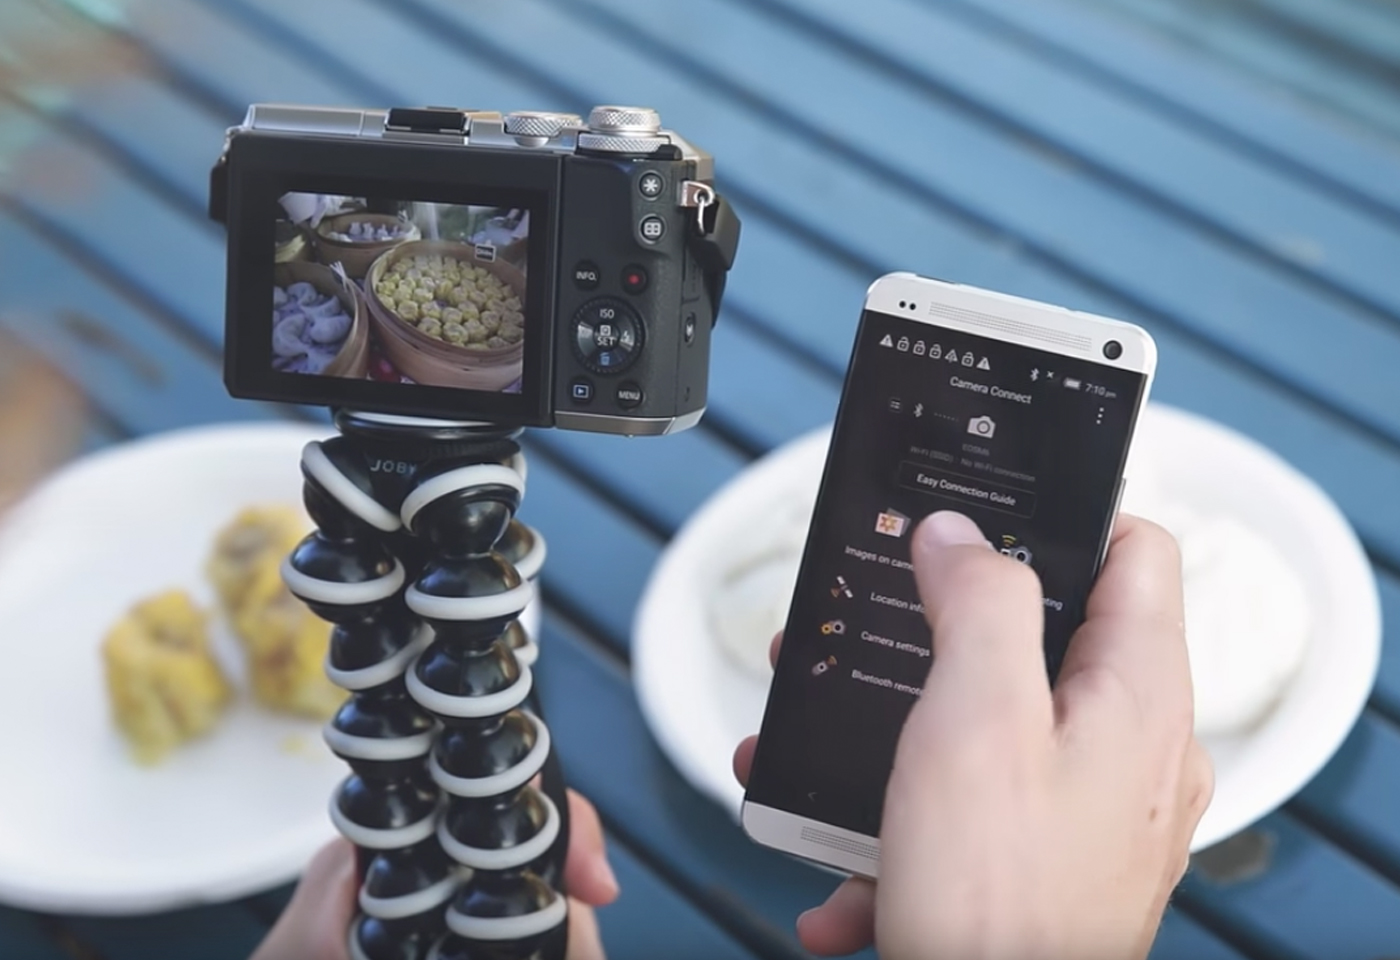 Product image of M6 vlogging with app